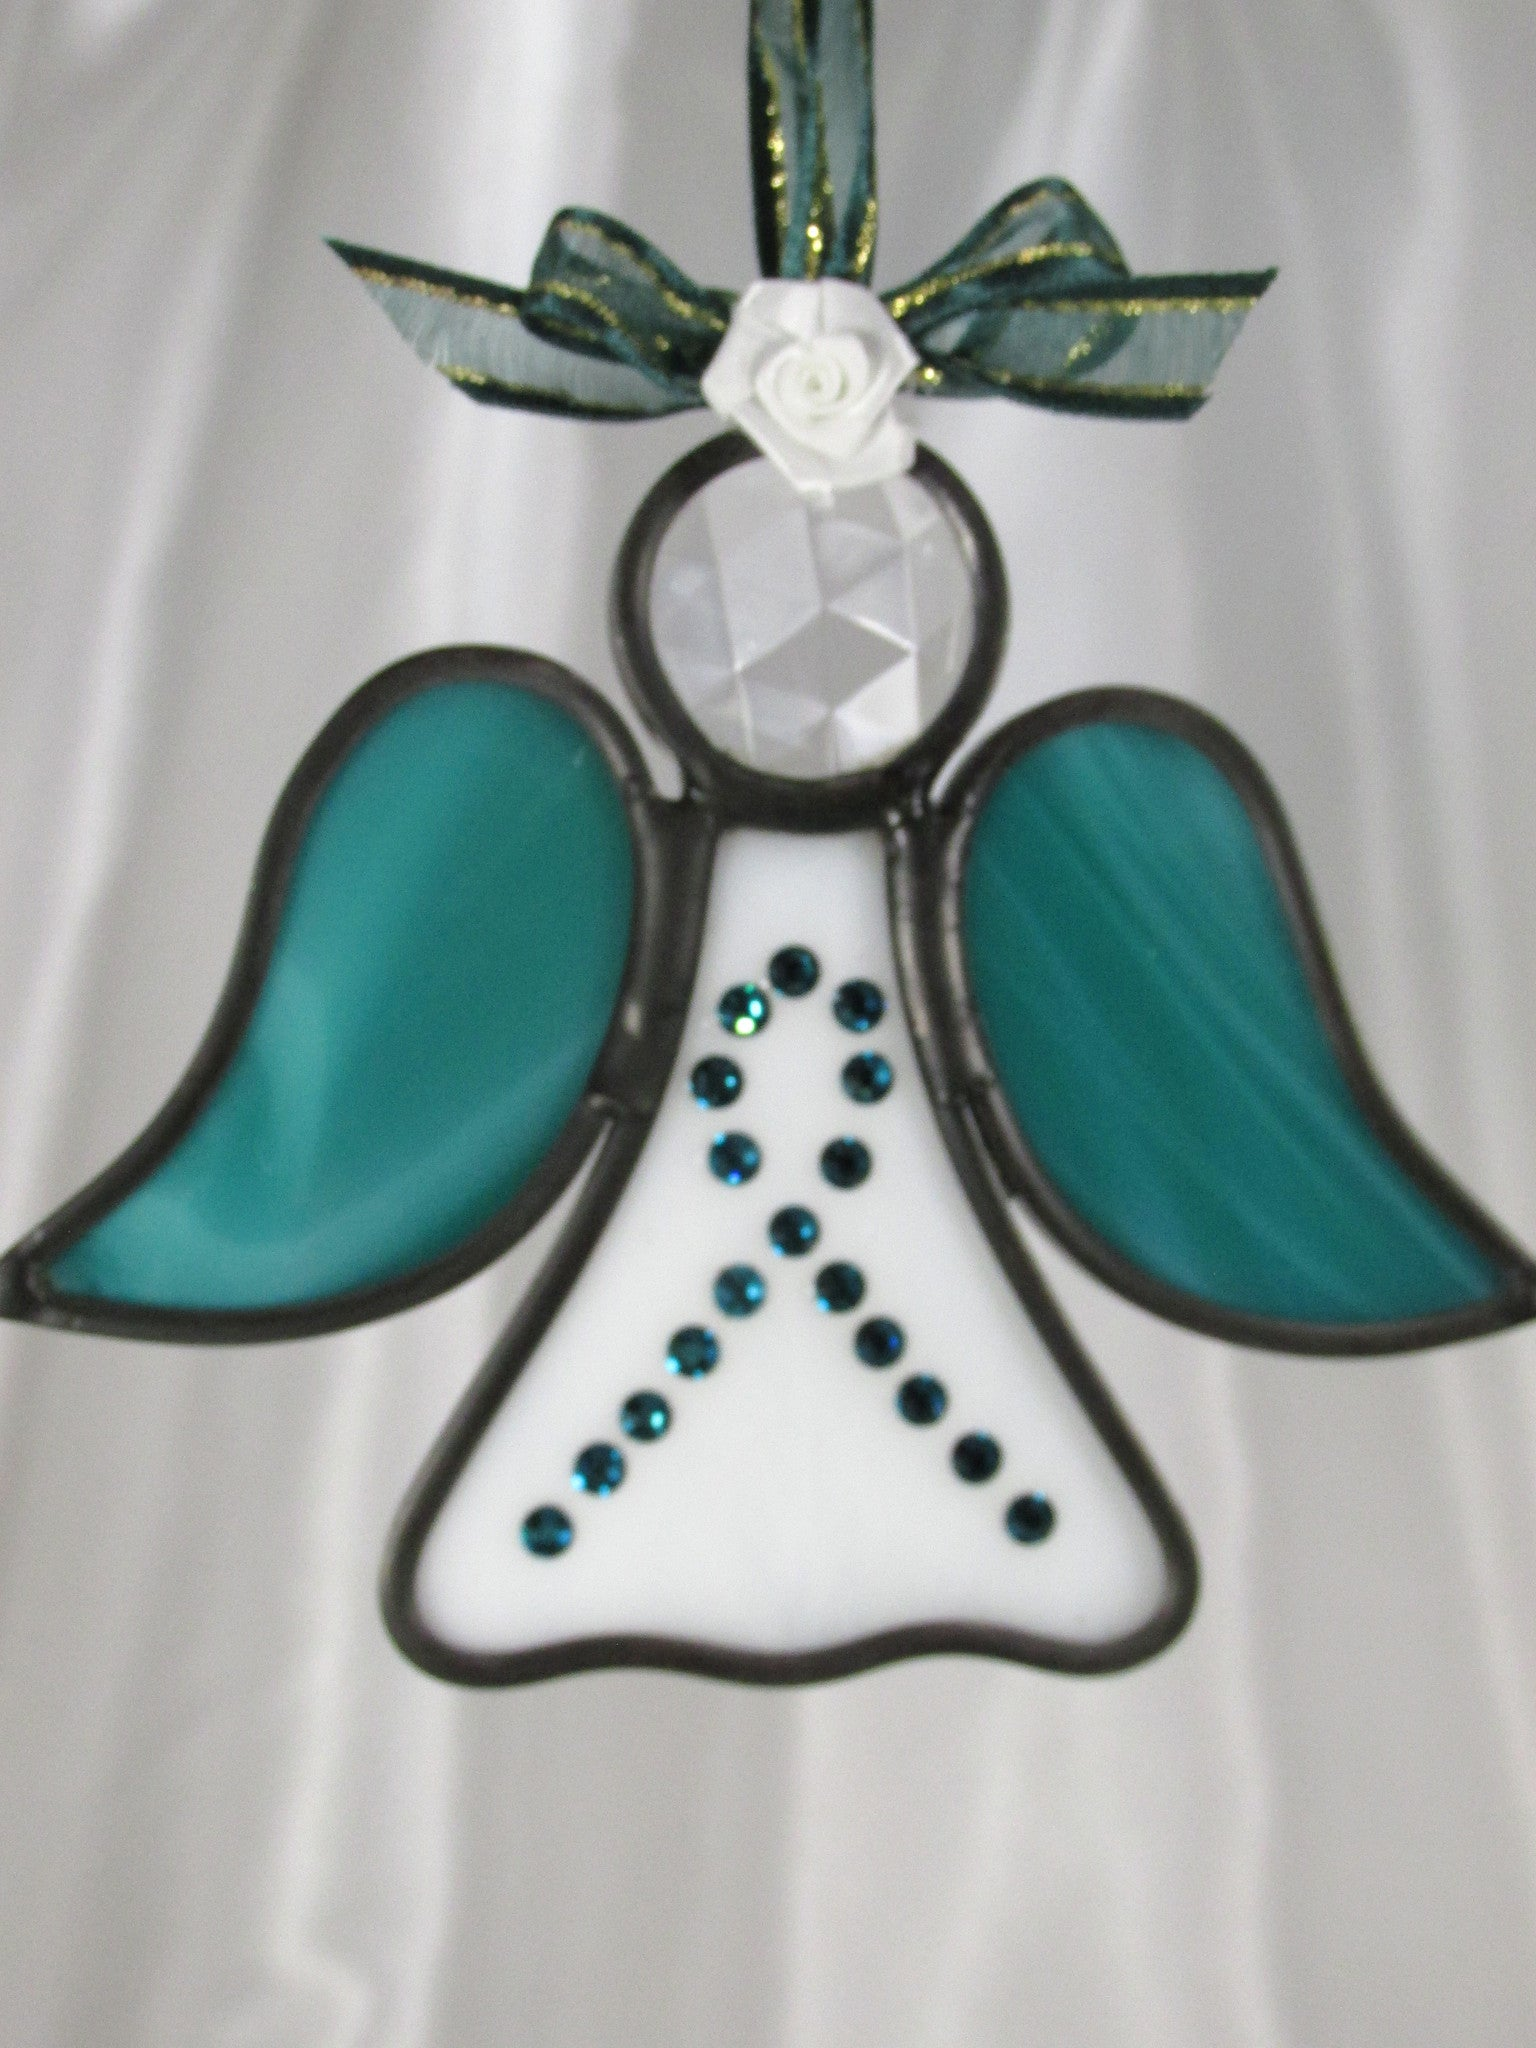 Green Teal Ovarian Cancer Awareness Angel Stained Glass Ornament or Suncatcher - Odyssey Creations